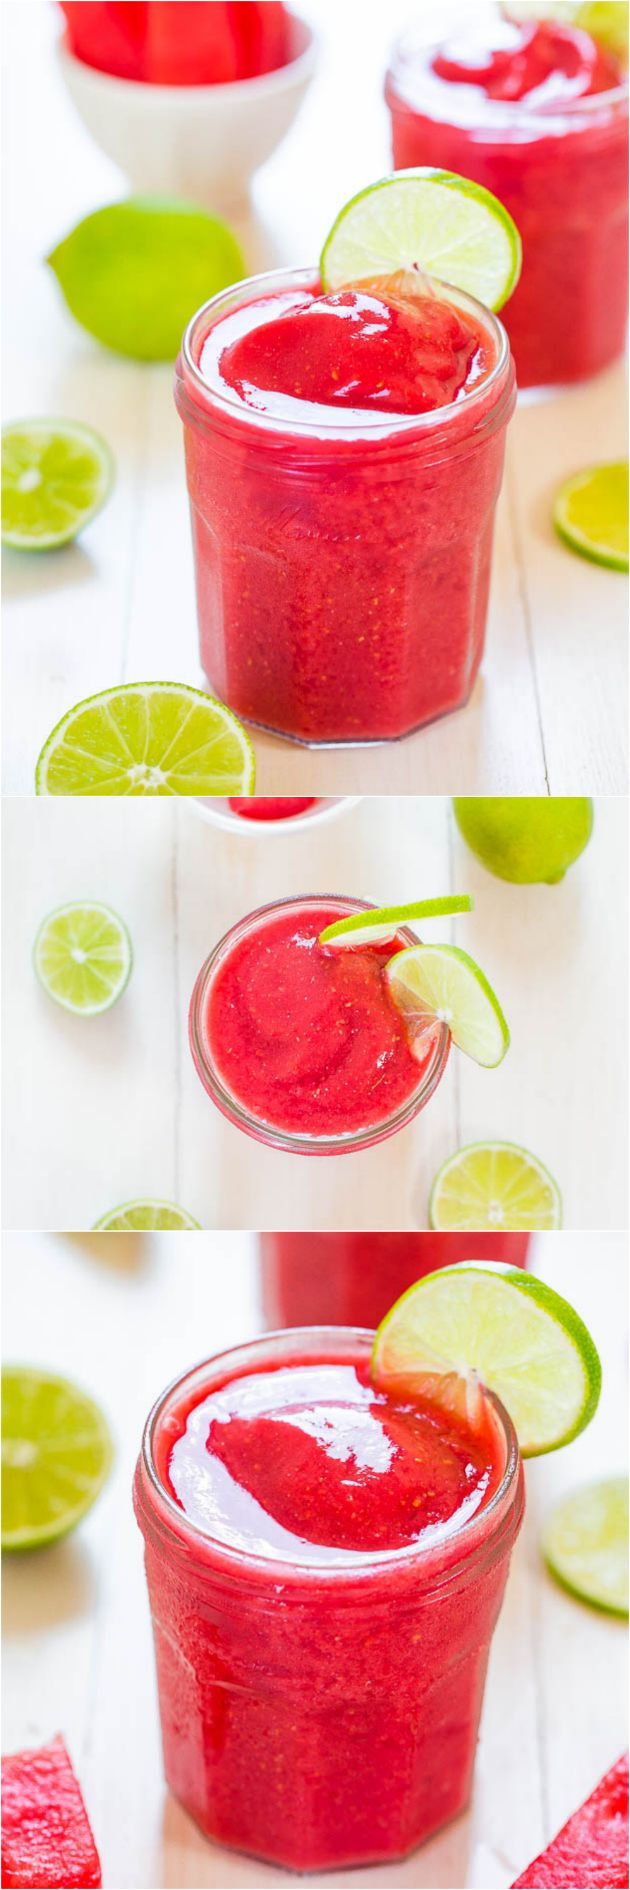 Watermelon Raspberry Slushies... can't wait for #summer!